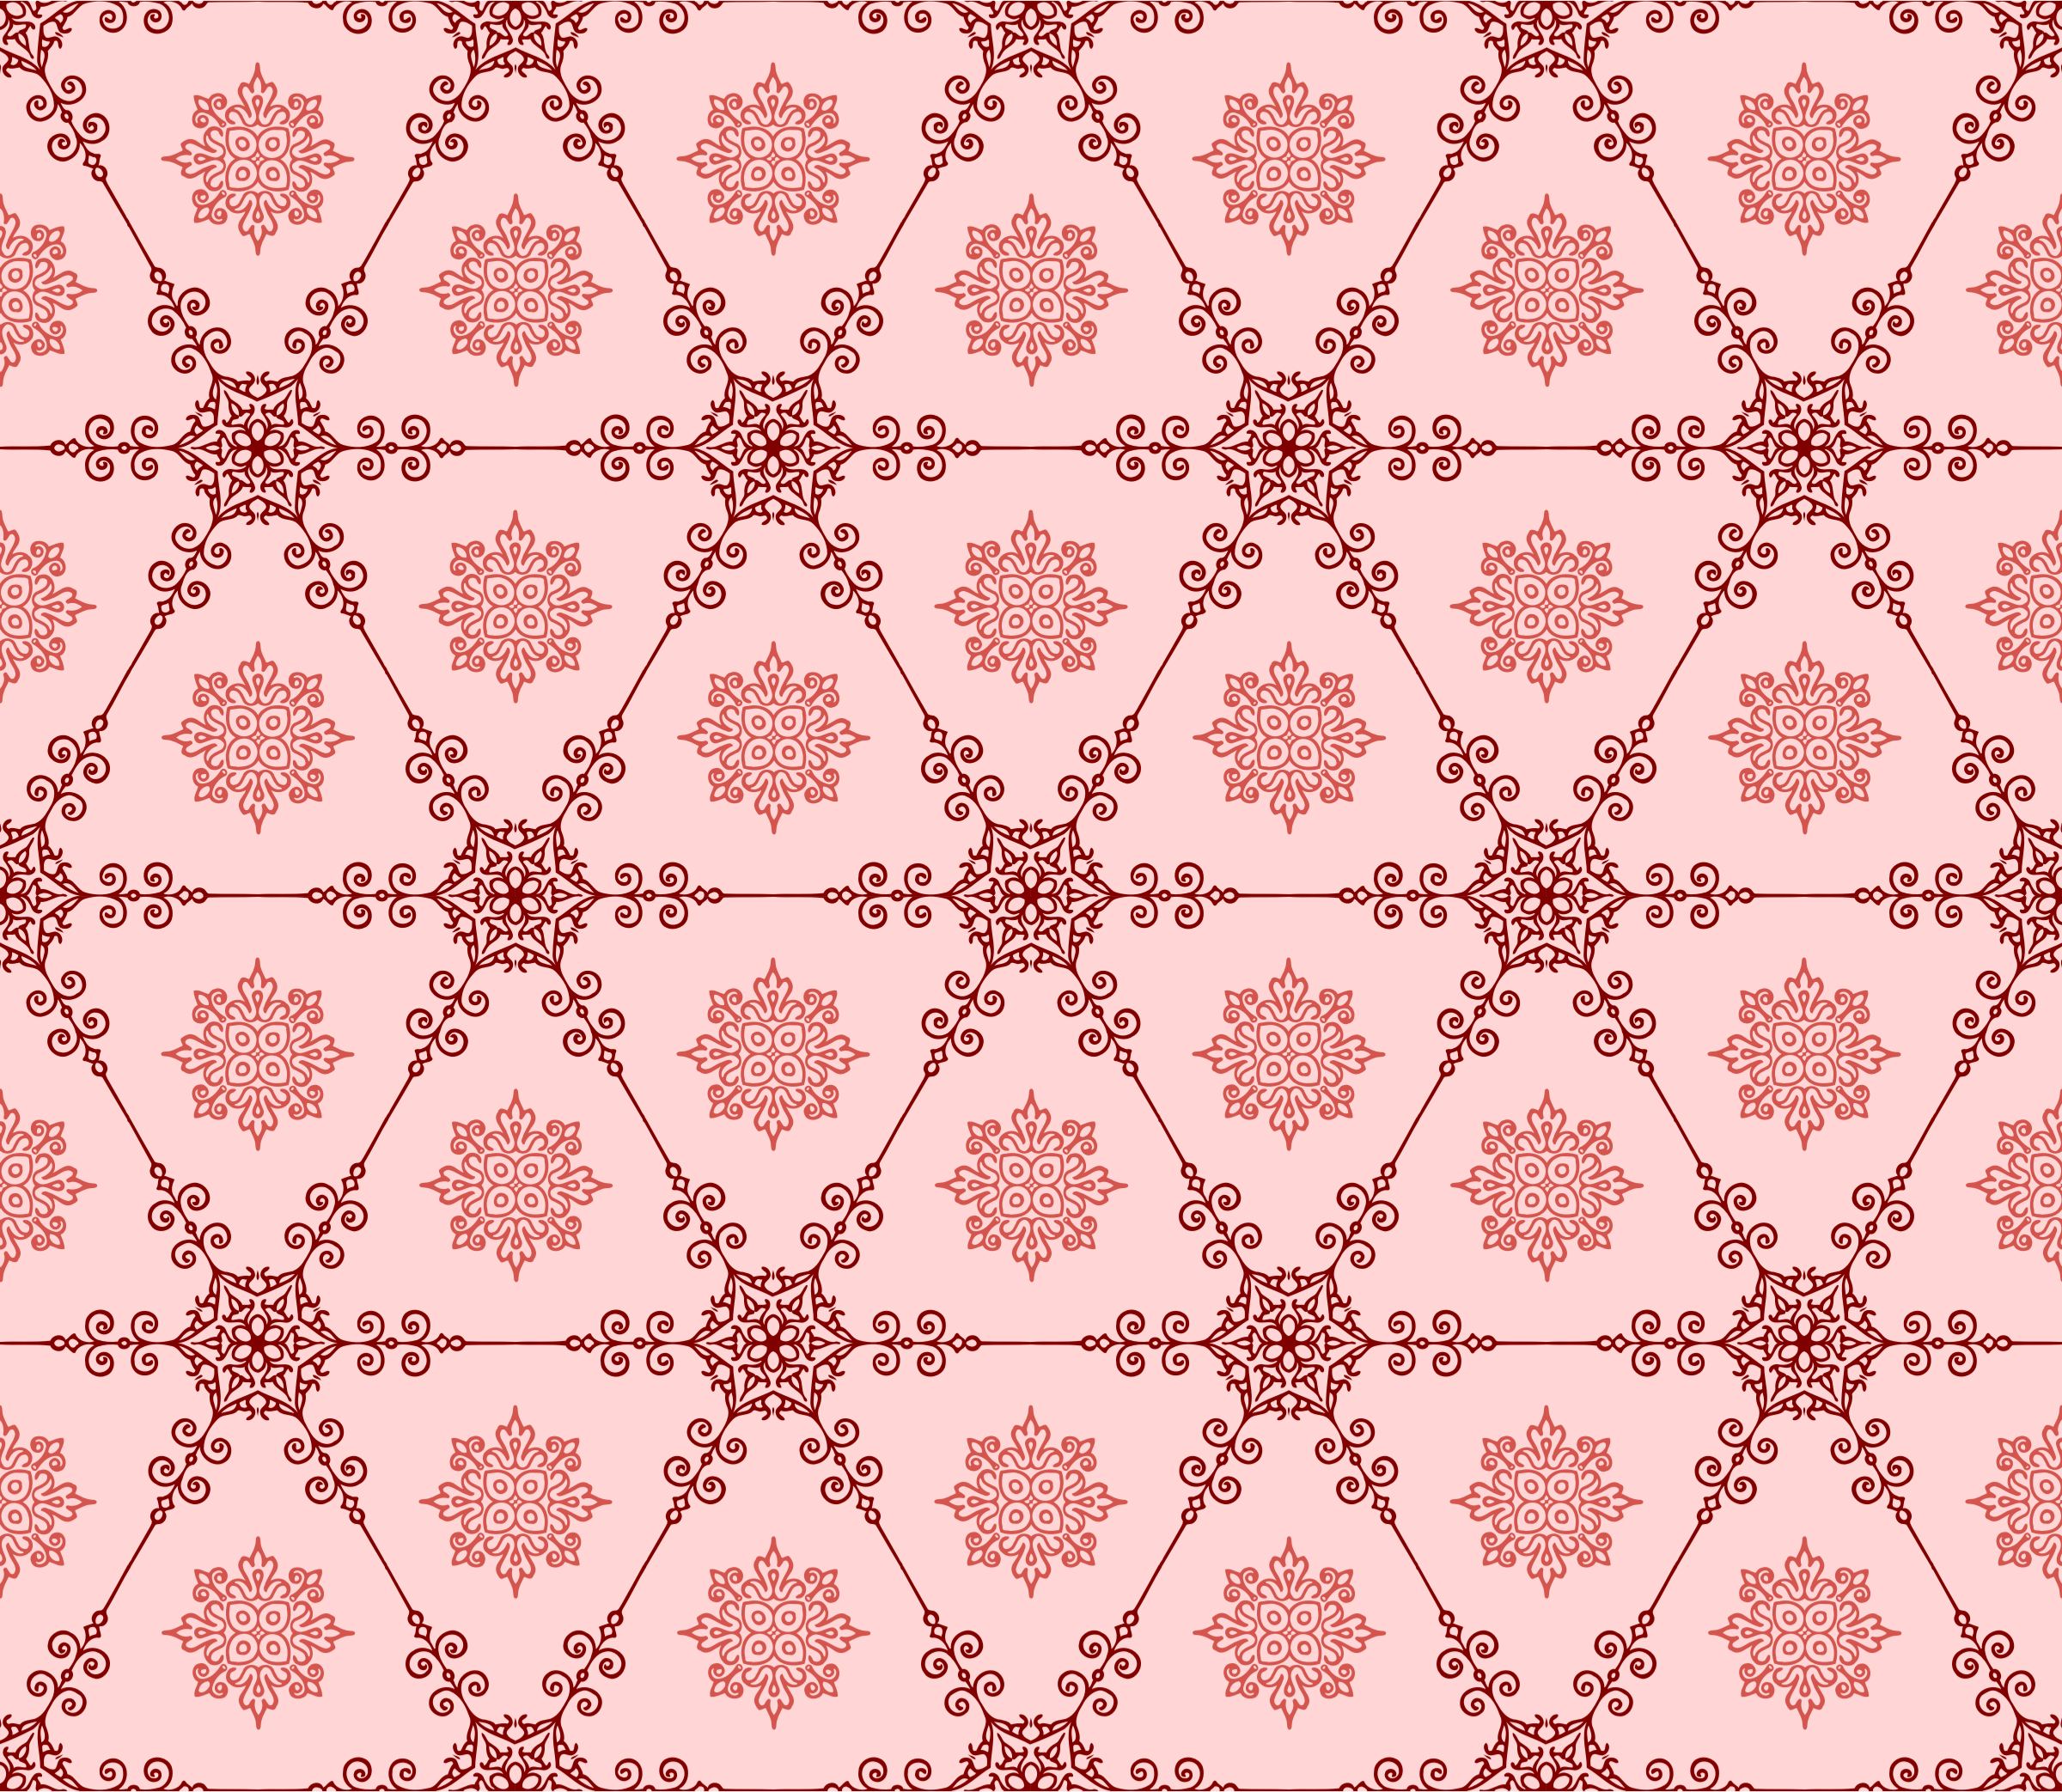 Background pattern 220 (colour) by Firkin